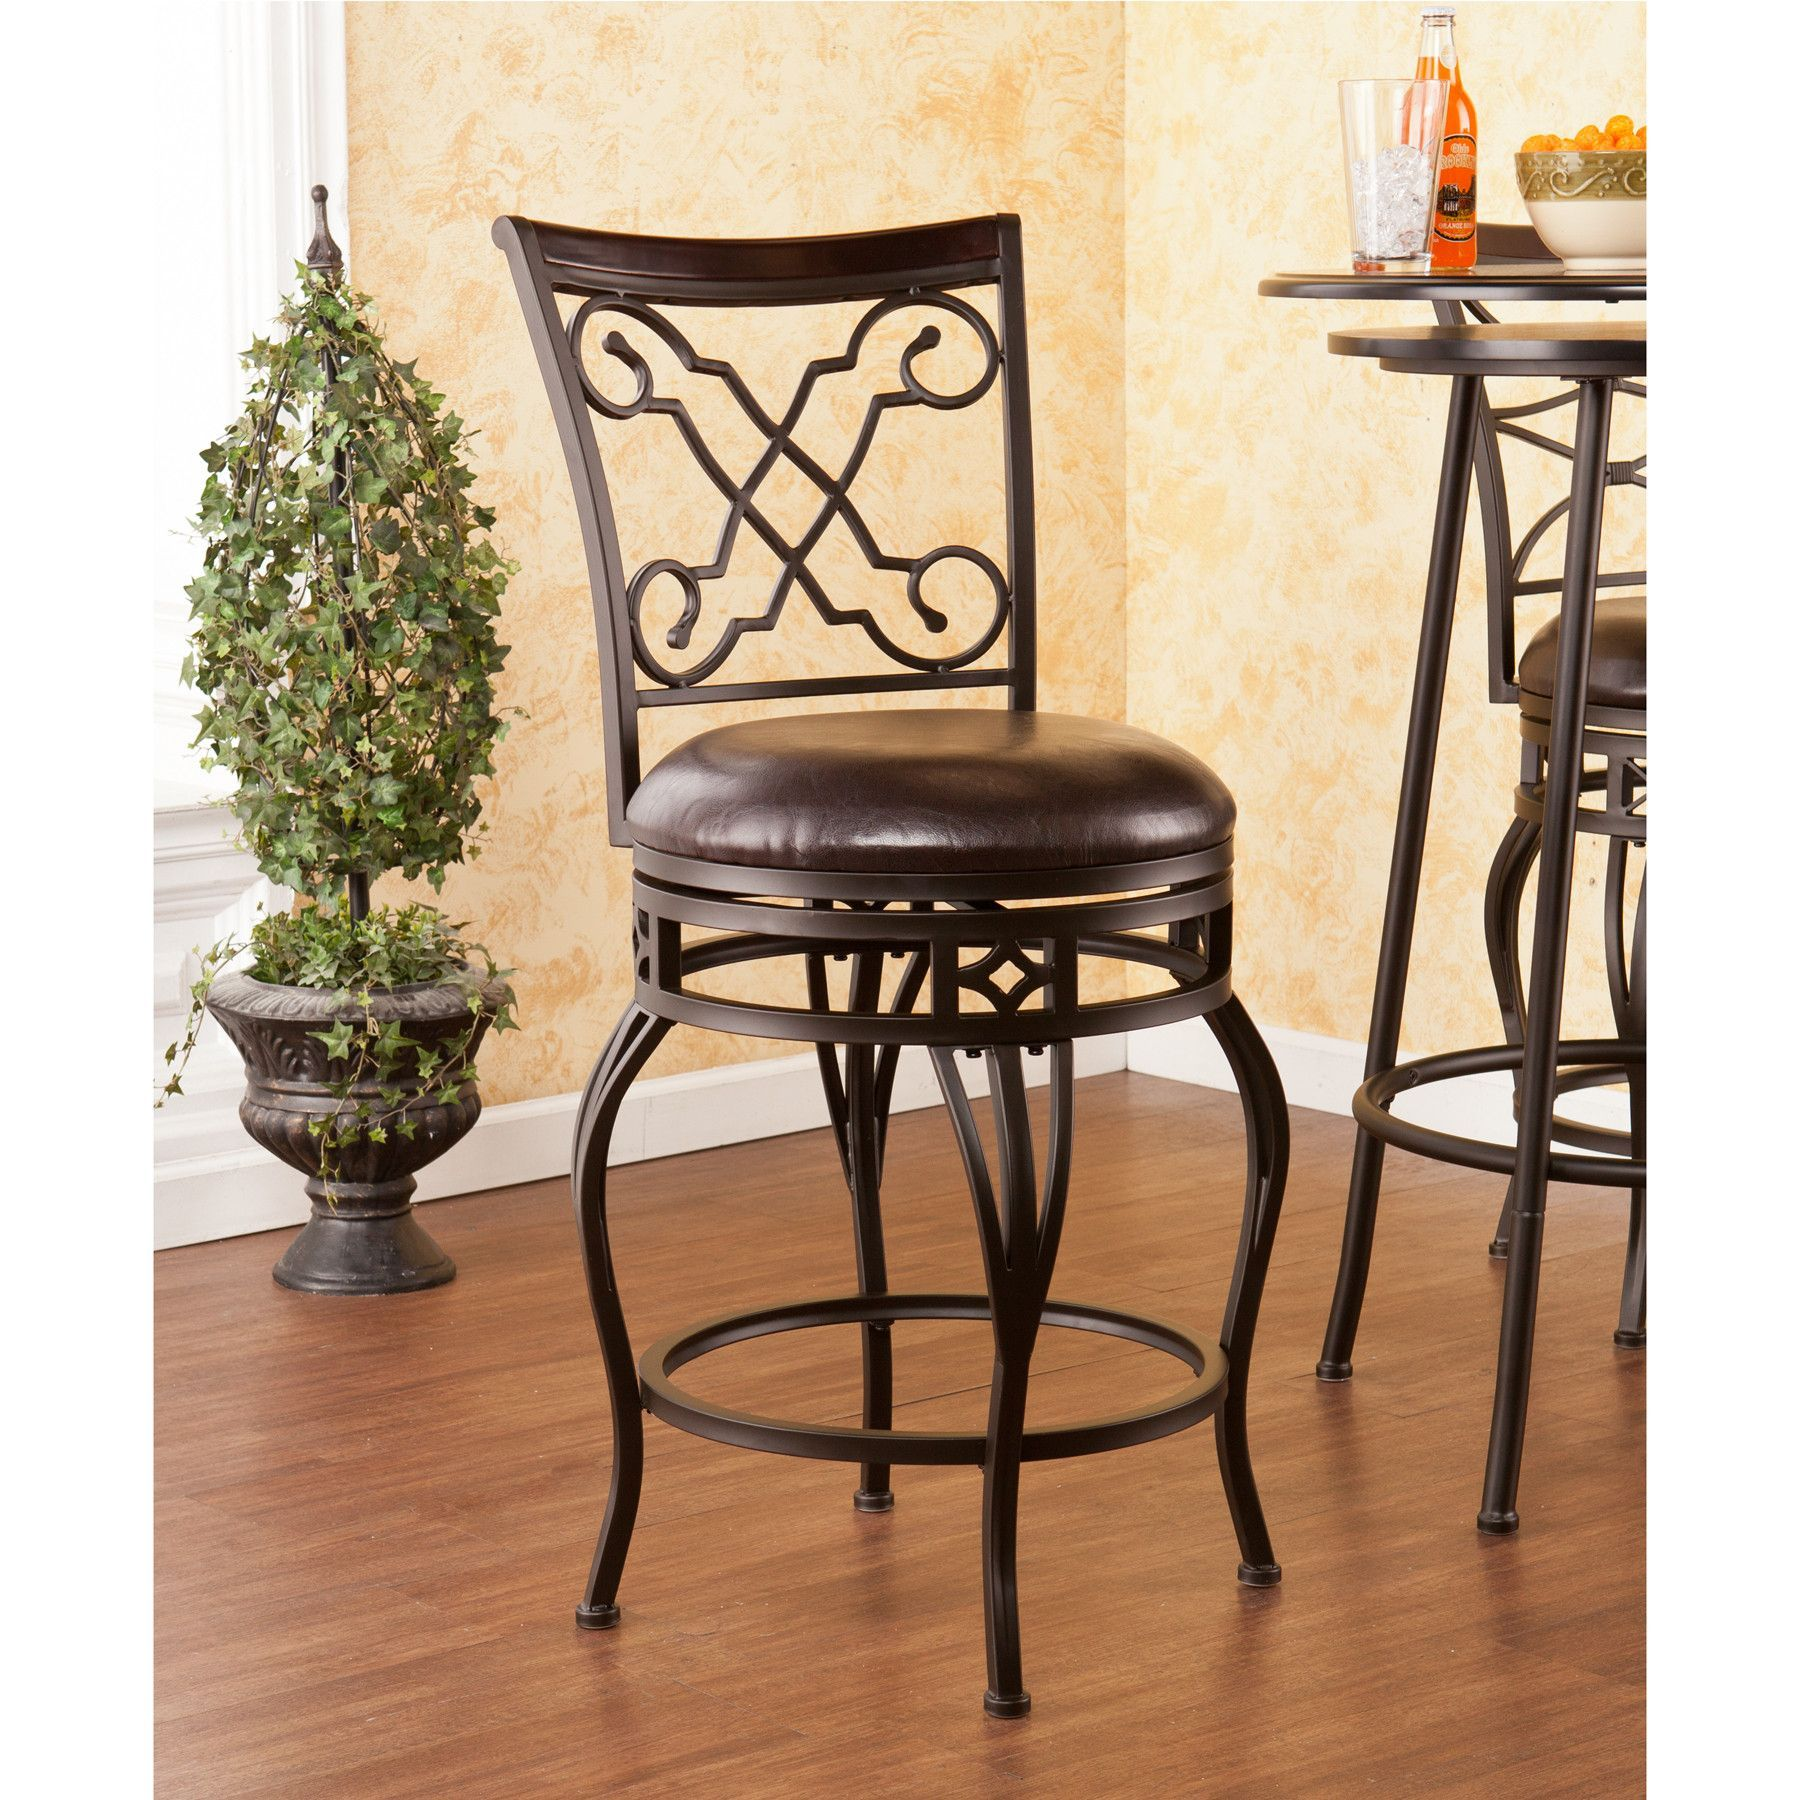 Winston swivel counter stool products pinterest products